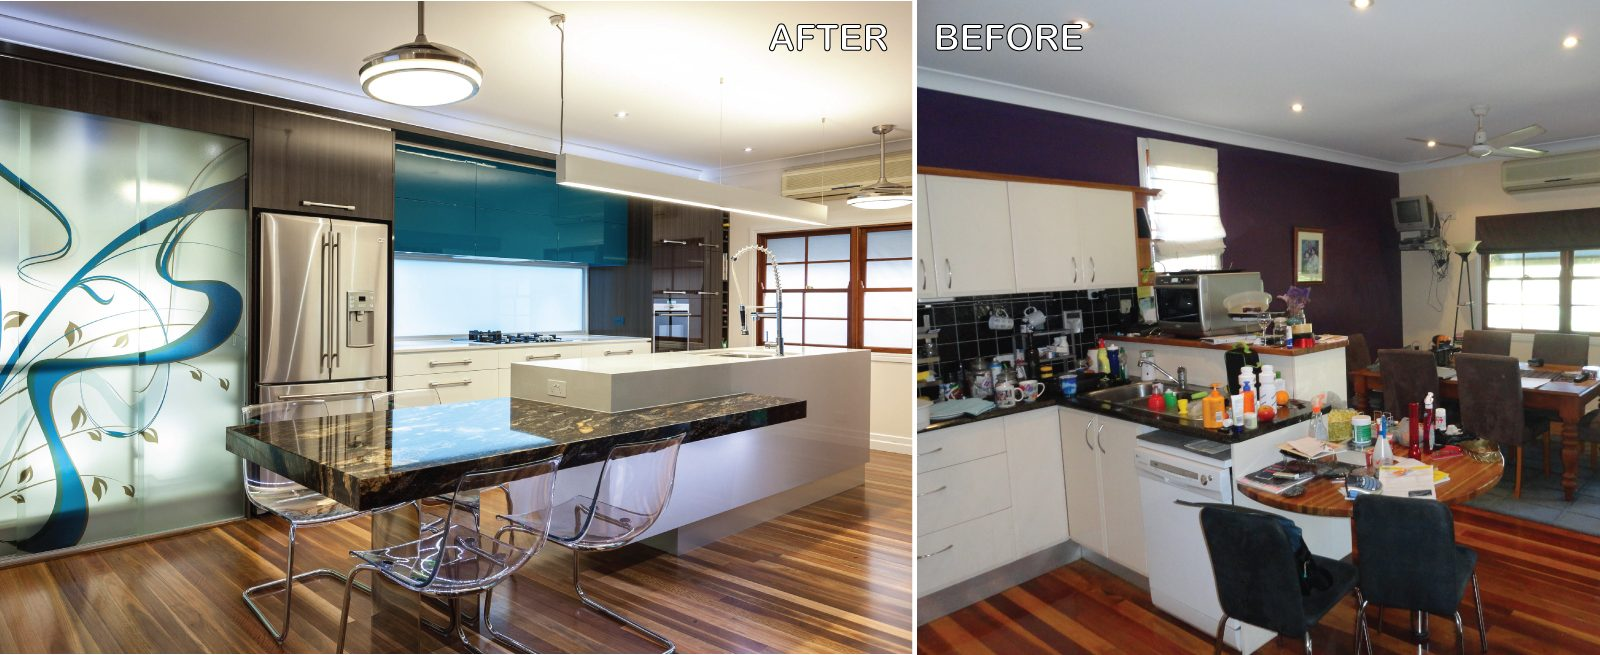 Kitchen-Transformations-Before-and-After